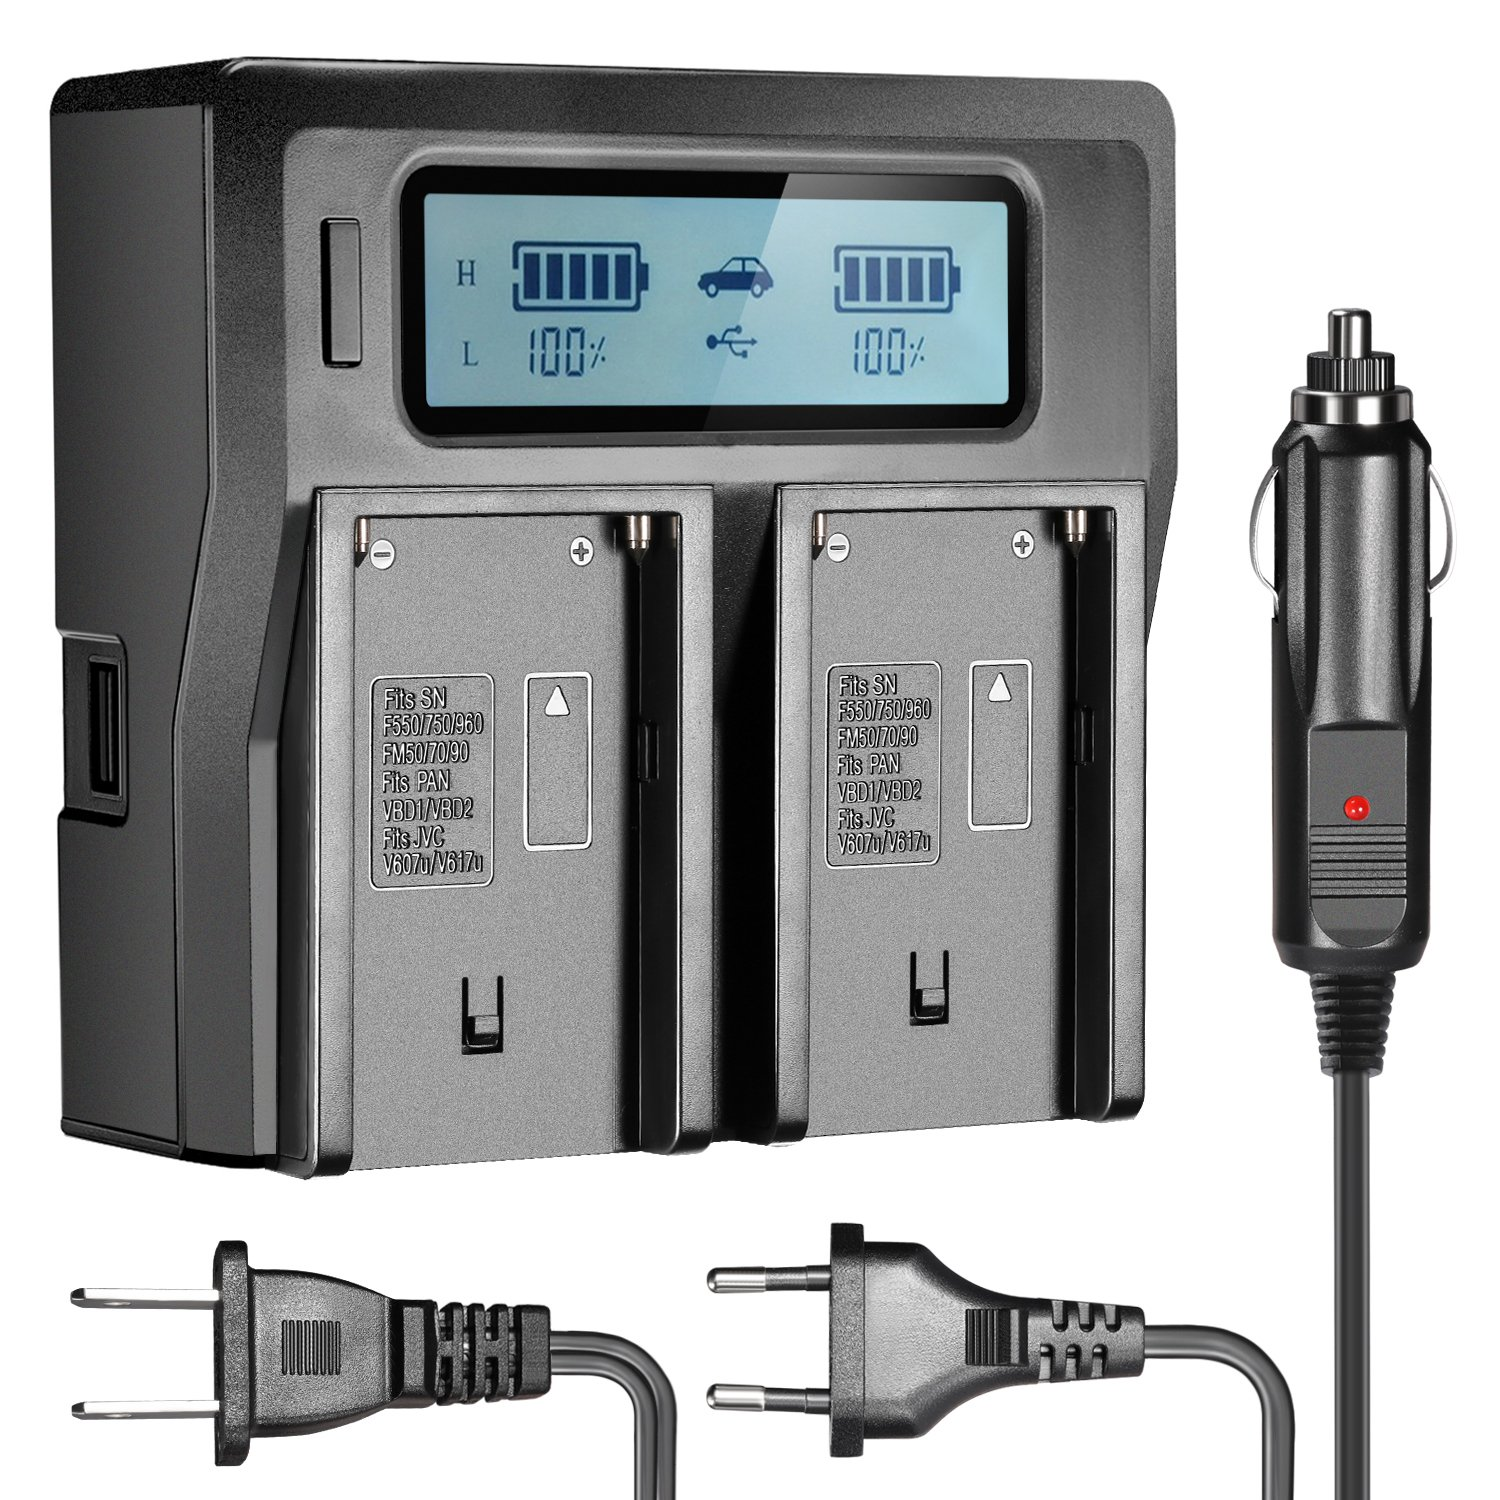 Neewer Dual-Channel LCD Display Battery Charger with 3 Plug(US Plug,EU Plug,Car Adapter) for Sony NP-F550/F570/F750/F770/F930/F950/F960/F970, NP-FM50/FM500H/QM71/QM91/QM71D/QM91D Camcorder Batteries by Neewer